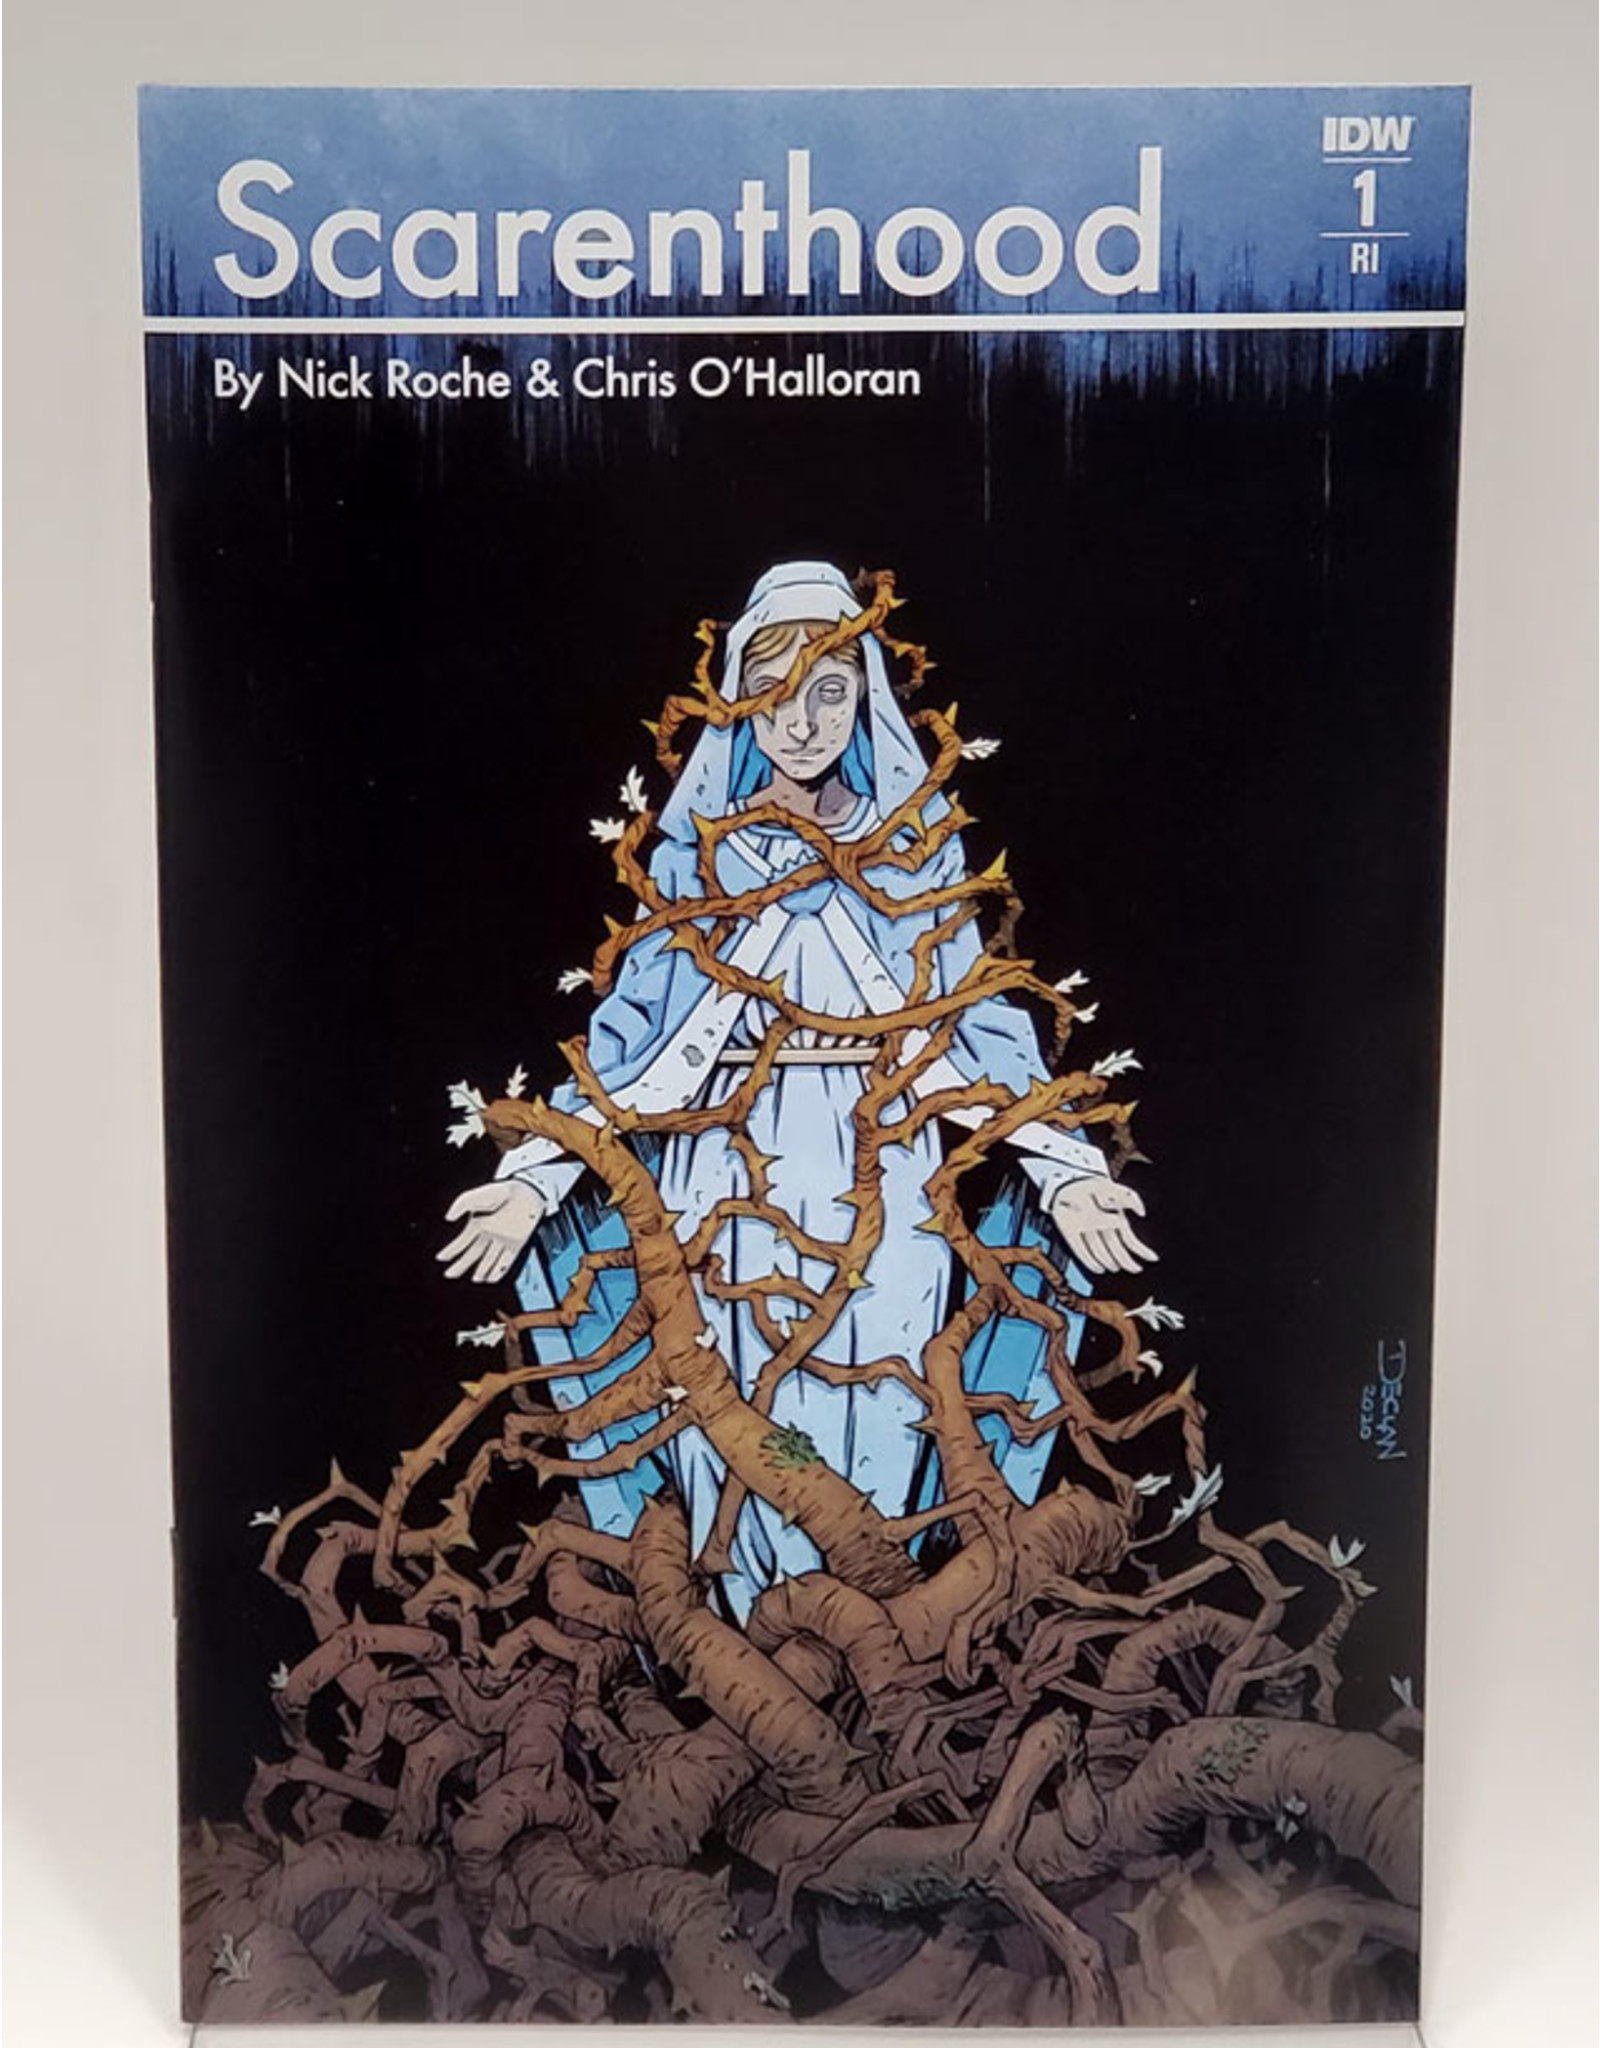 IDW PUBLISHING SCARENTHOOD #1 (OF 4) 1:10 INCENTIVE DECLAN SHALVEY